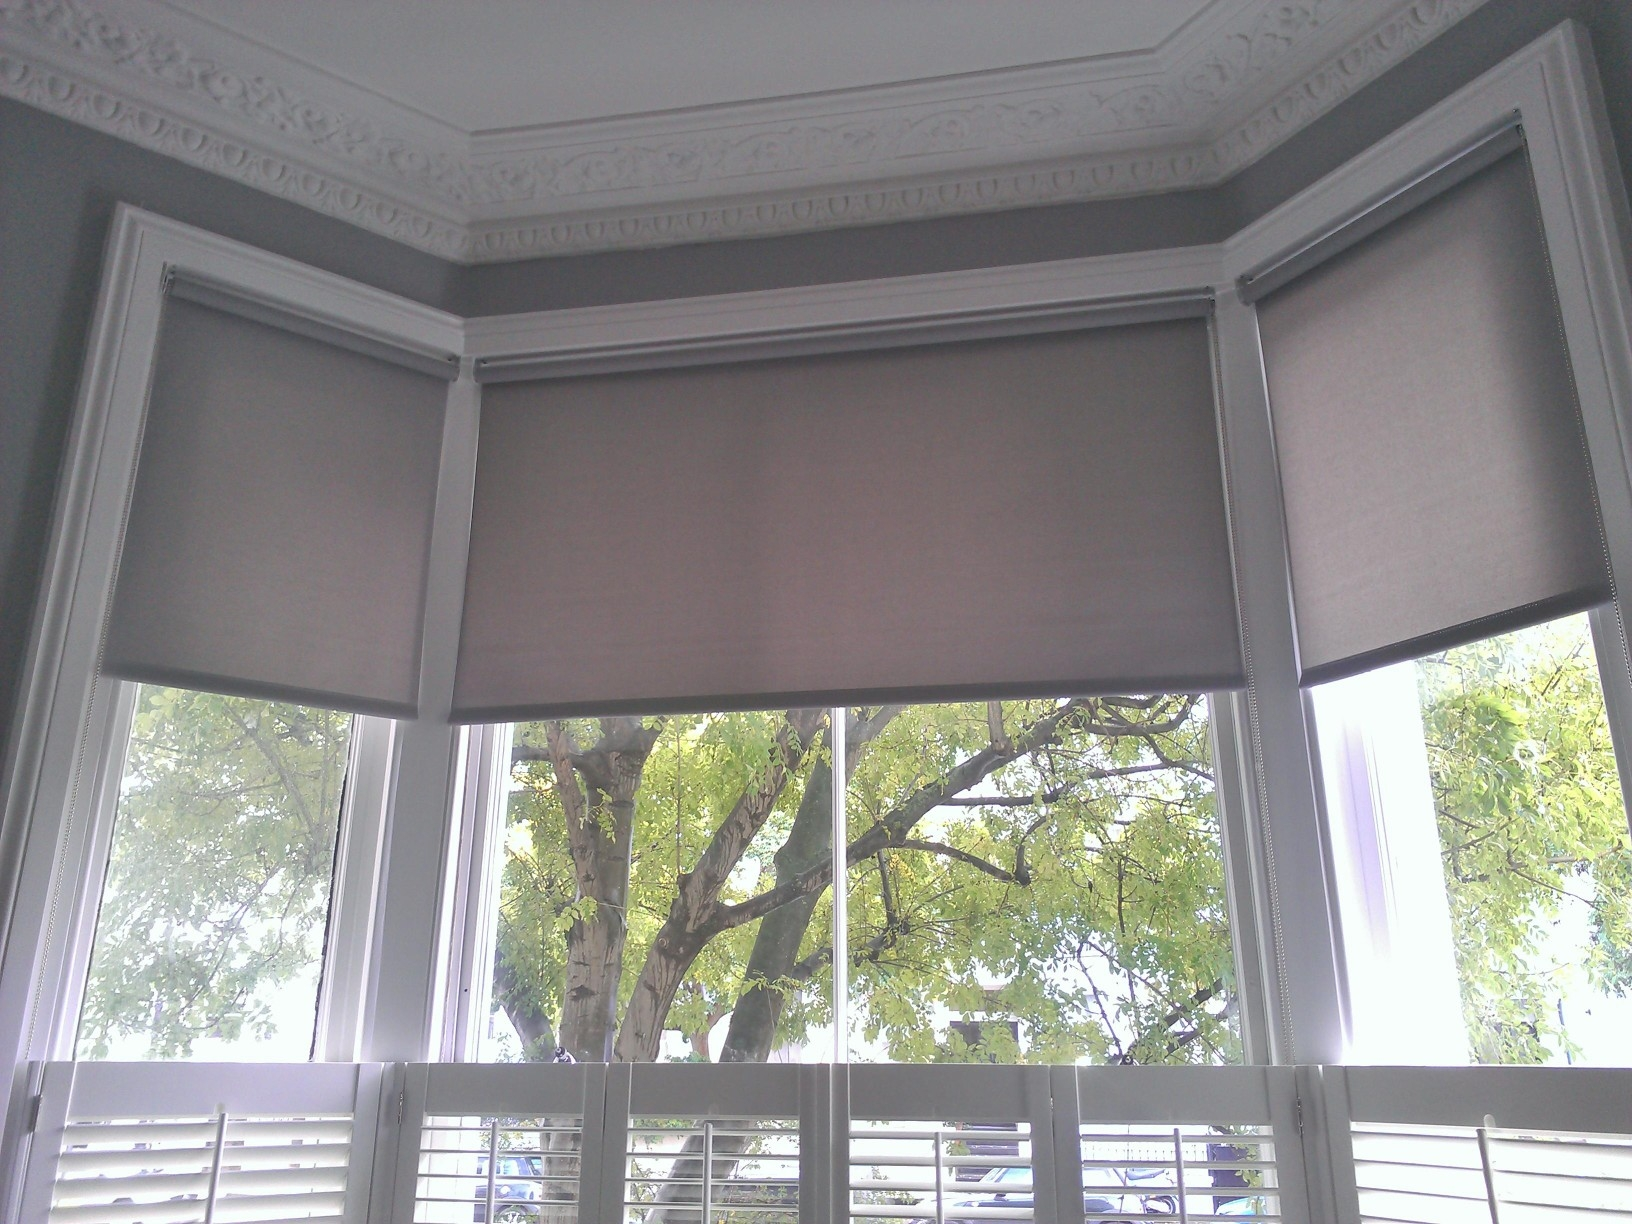 Curtain Ideas For Windows With Blinds Part - 49: 25 Best Ideas About Bay Window Blinds On Pinterest Bay Windows In Bay Window  Roller Blinds